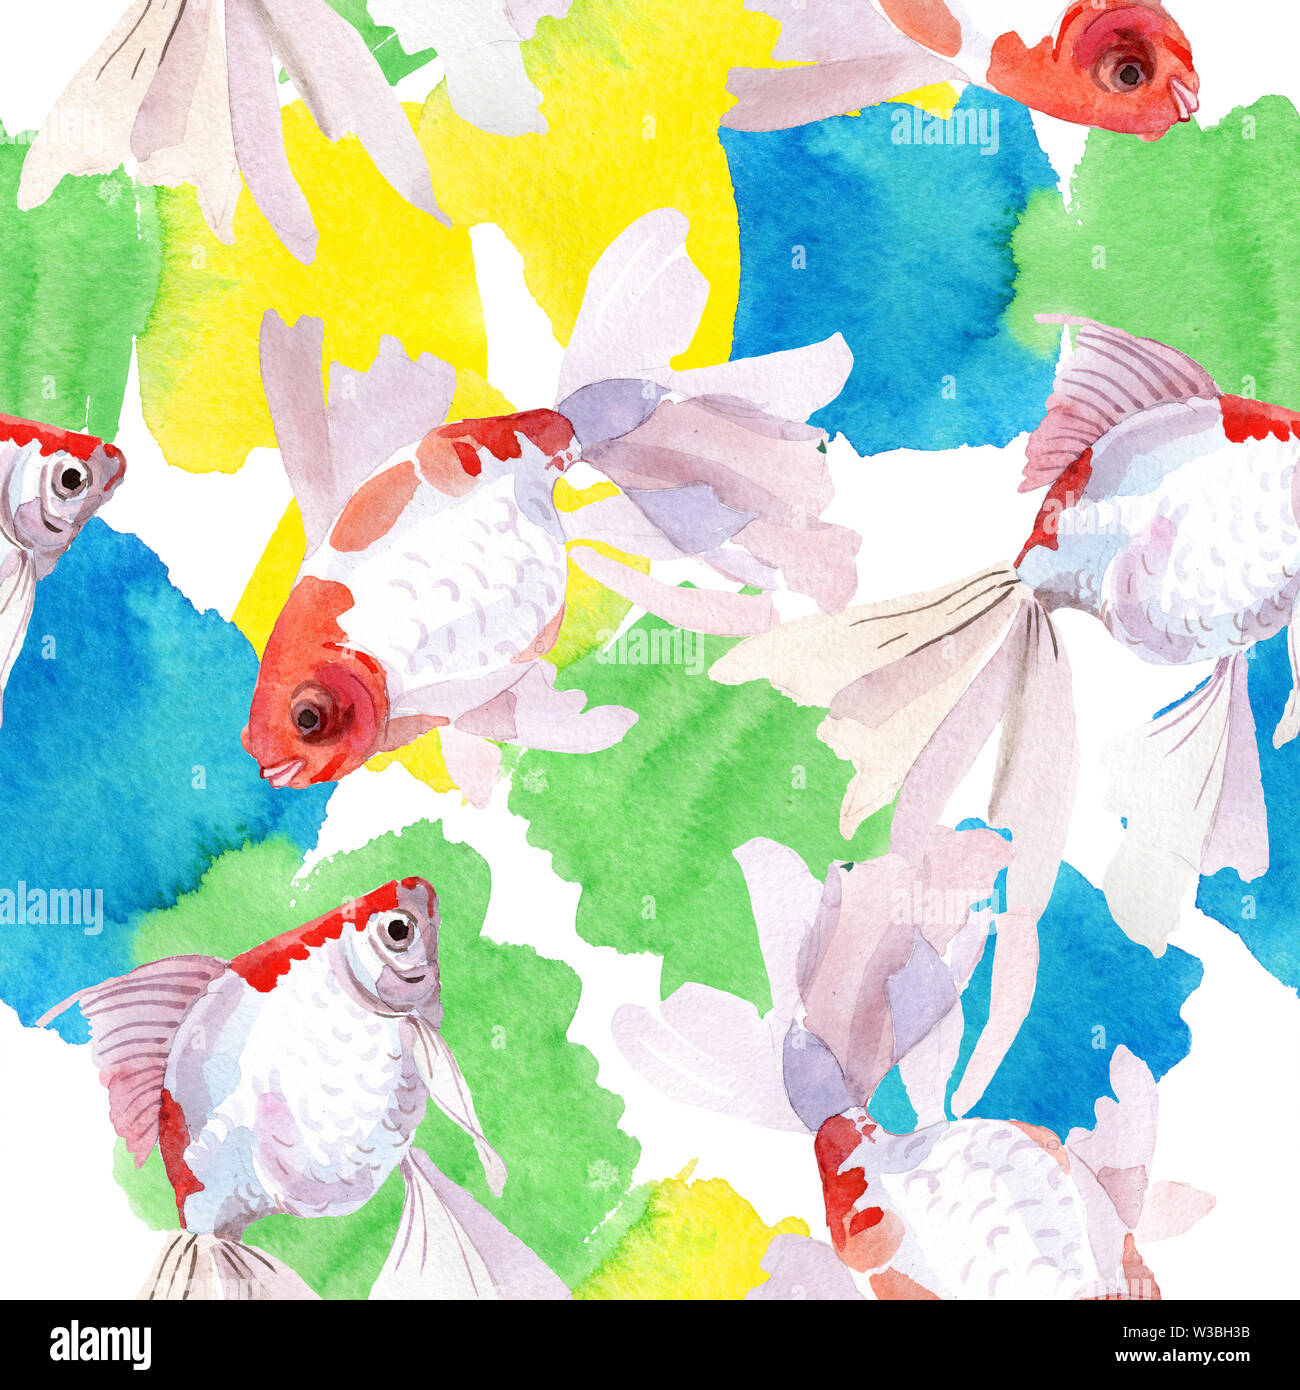 Goldfish aquatic underwater colorful tropical fish set. Watercolor illustration set. Seamless background pattern. - Stock Image